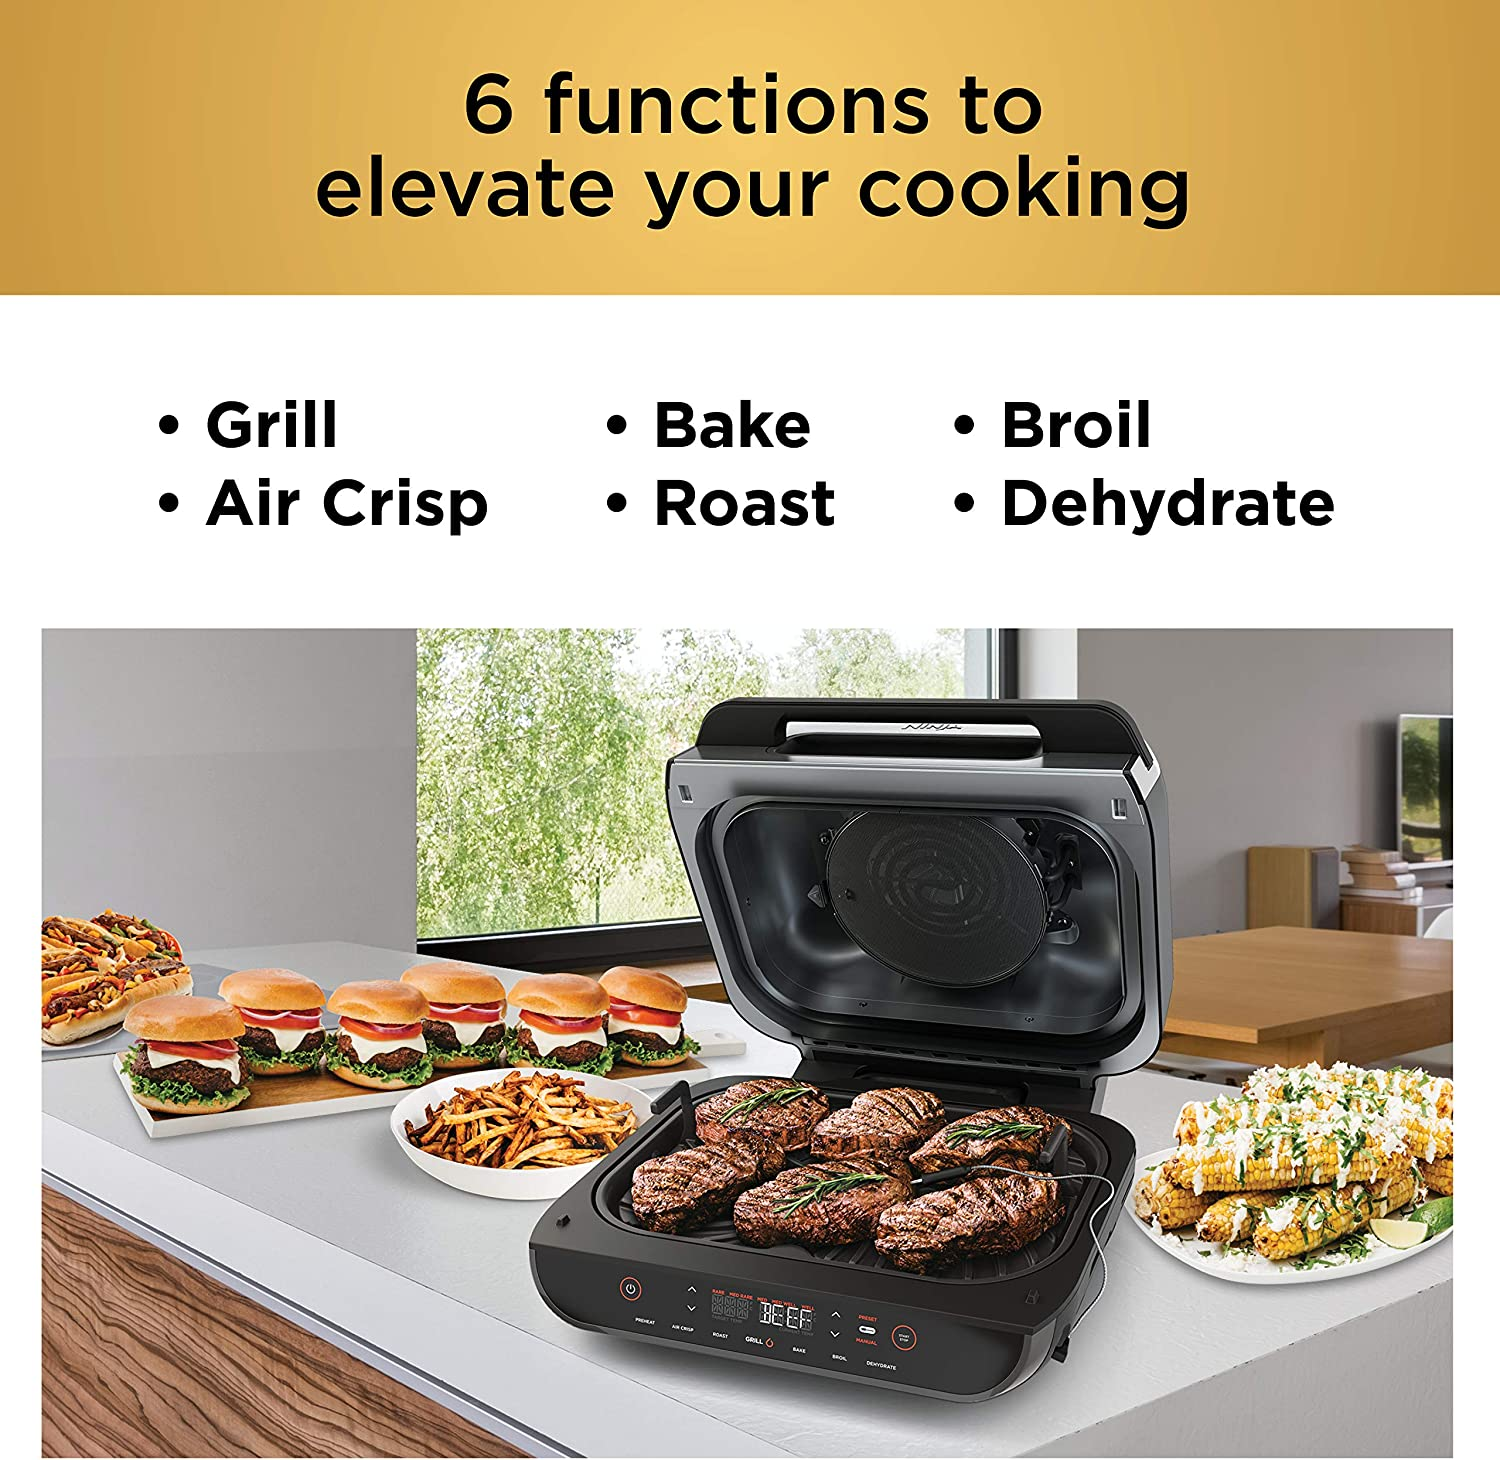 Ninja Fg551 Foodi 6 In 1 Indoor Grill With 4 Quart Air Fryer Bake Dehydrate Broil And Smart Cook System With Xl Capacity And A Black High Gloss Finish Amazon De Home Kitchen